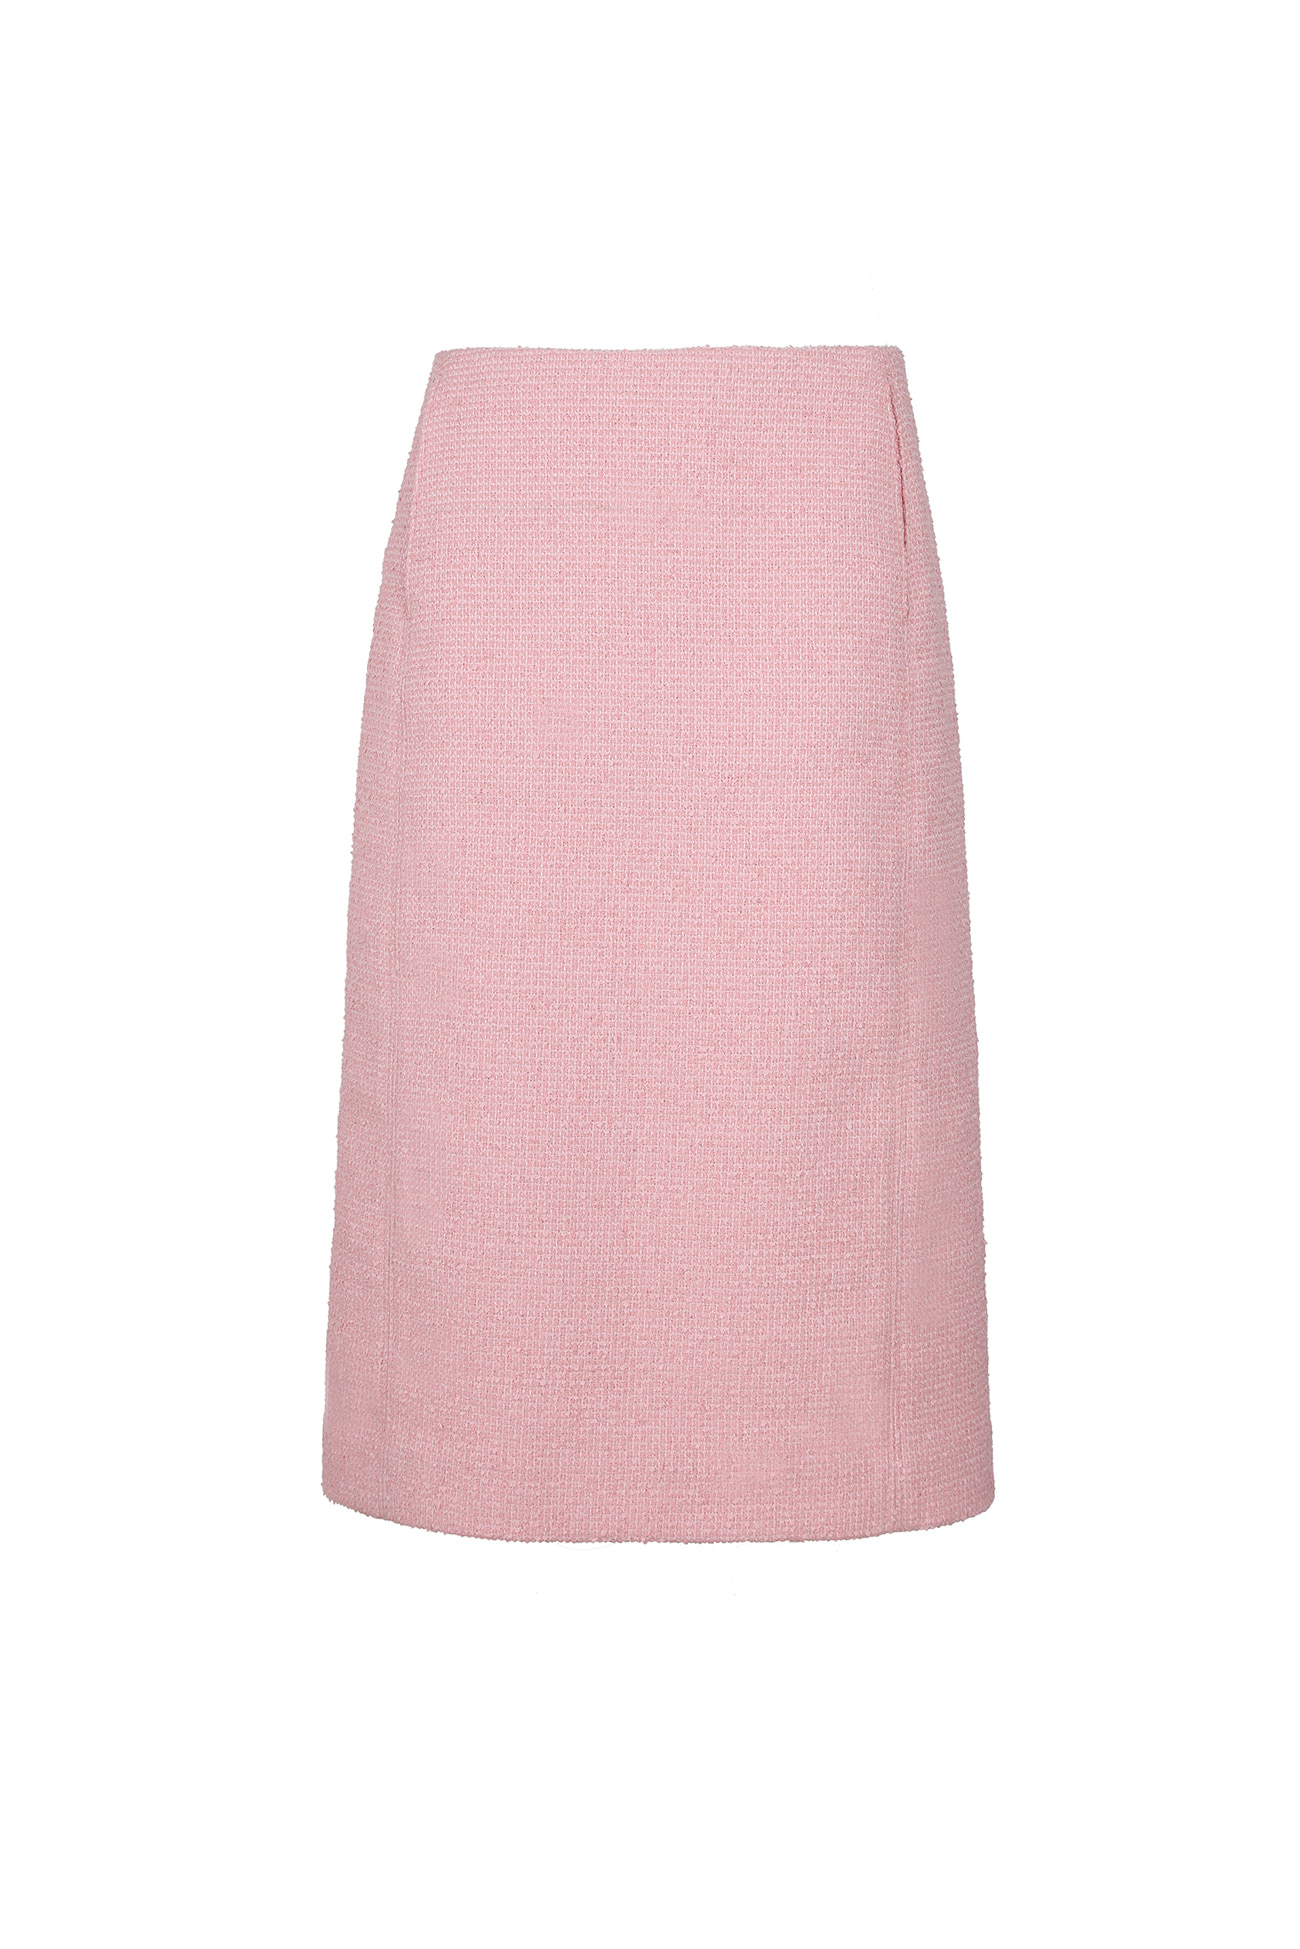 HIGH QUALITY LINE - PINK Tweed Boucle Midi Skirt (made fabric)